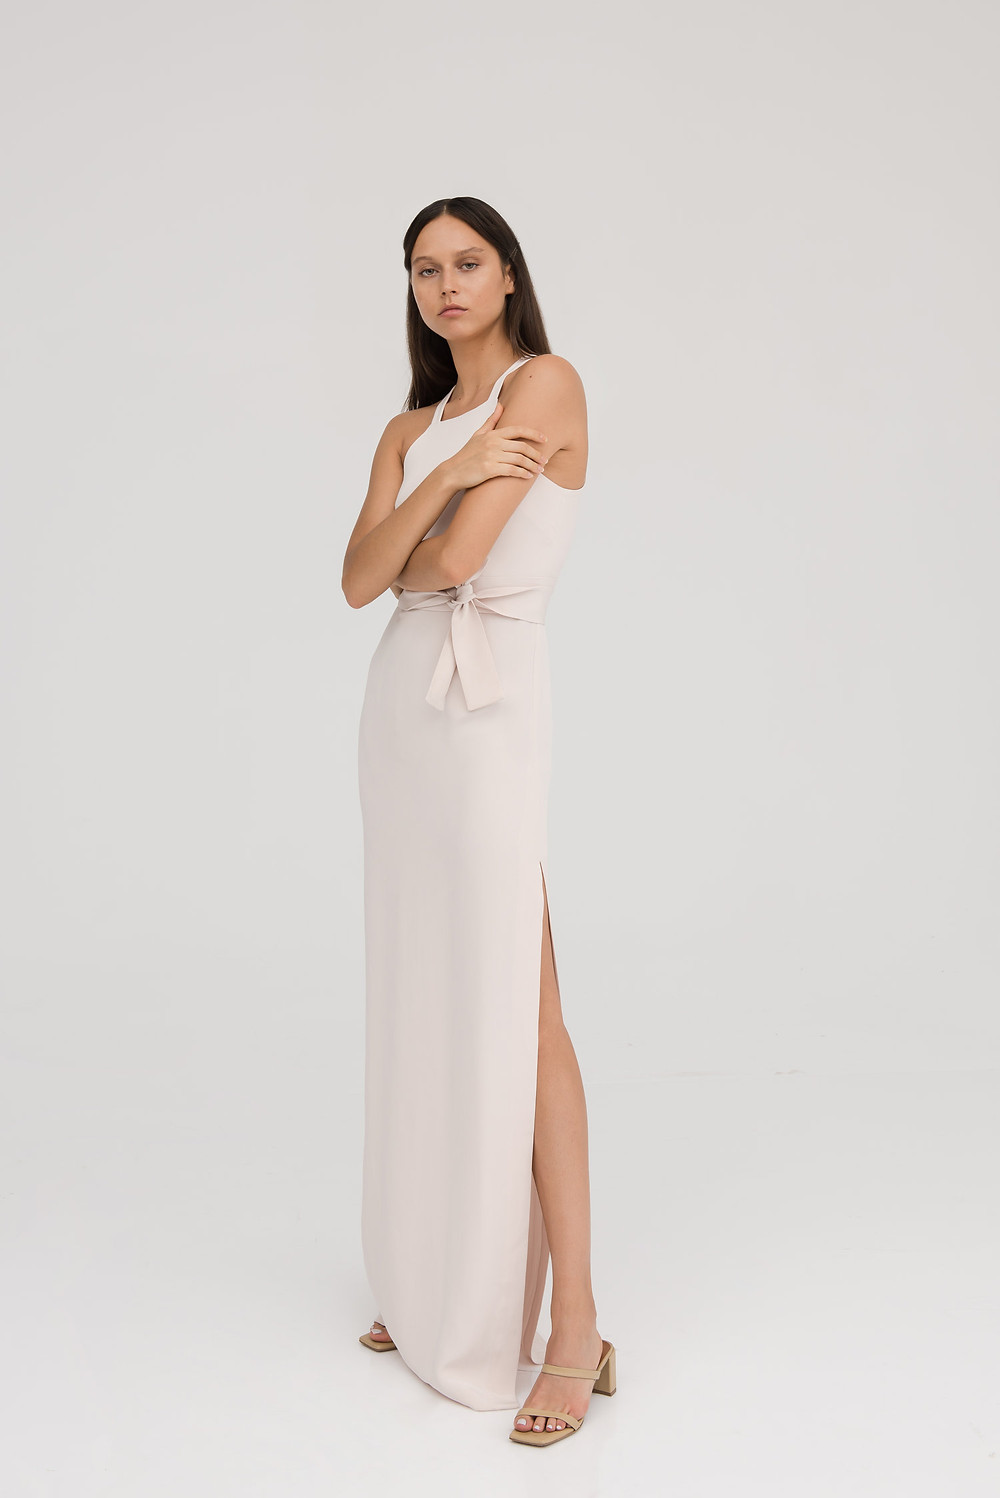 Female model in a white strap full length dress looking at the camera